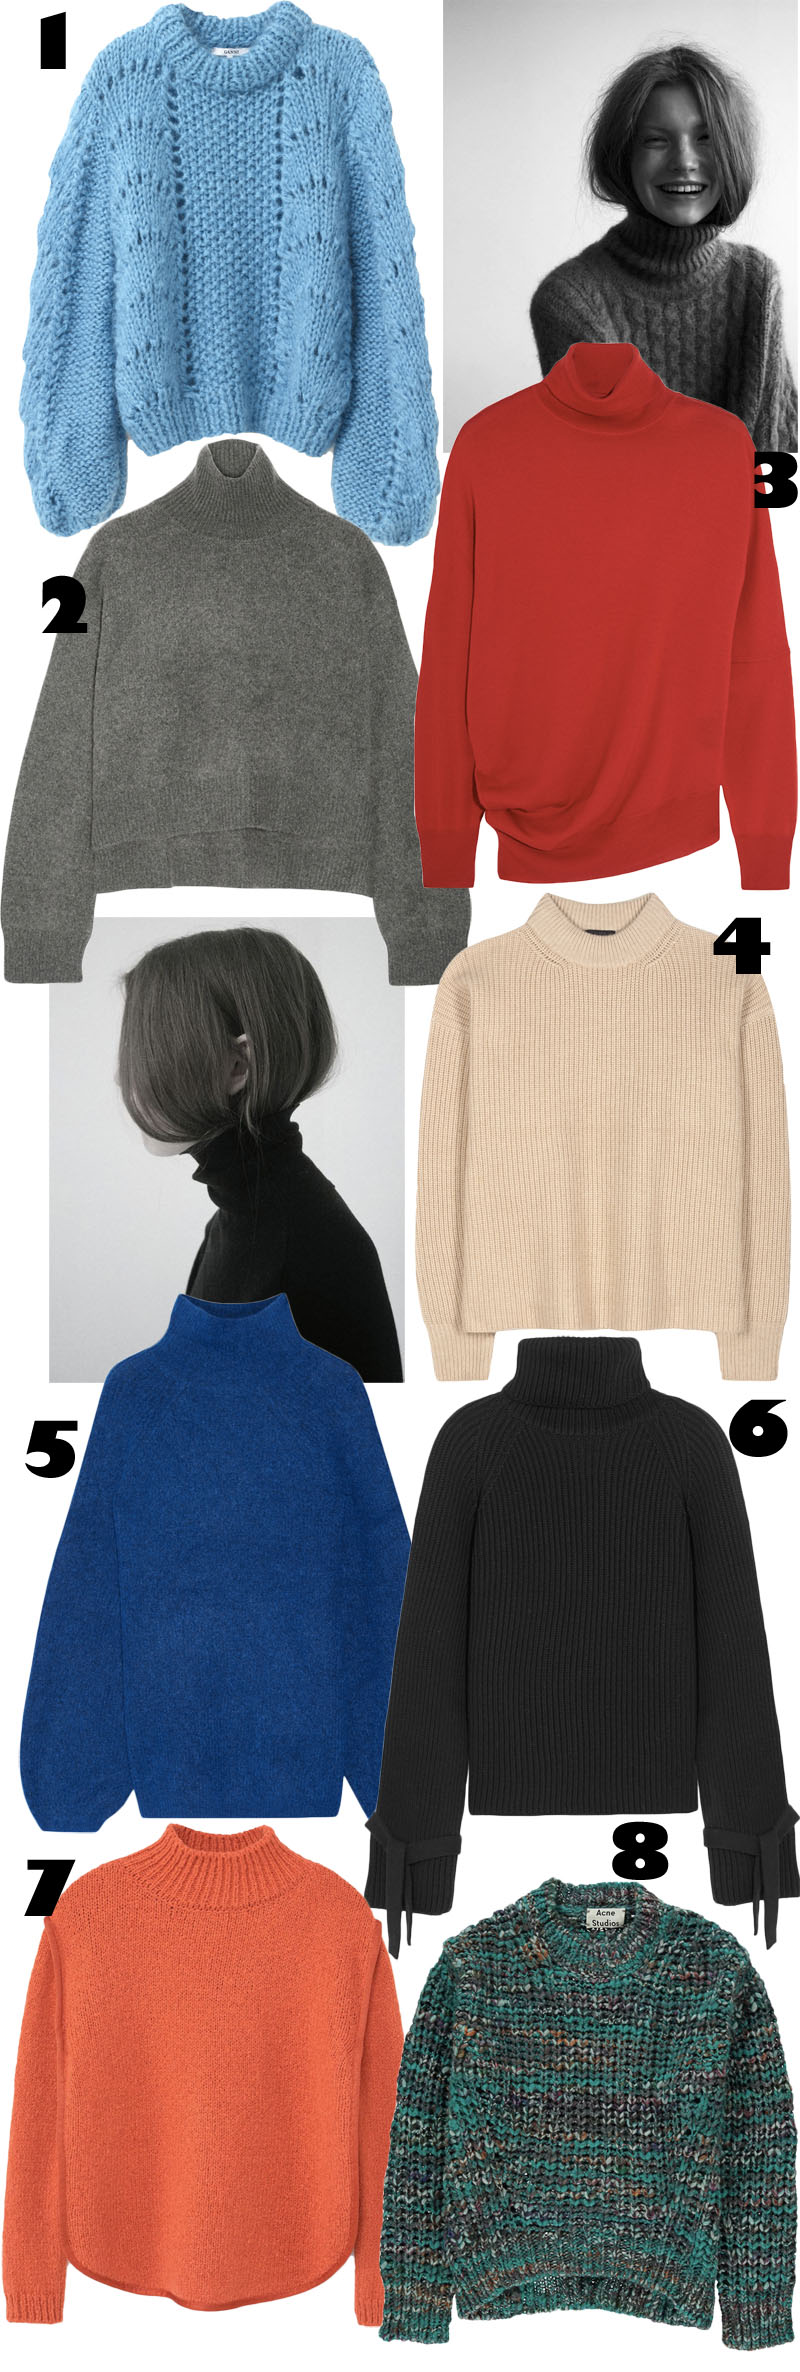 Eyes on: Turtleneck Sweaters